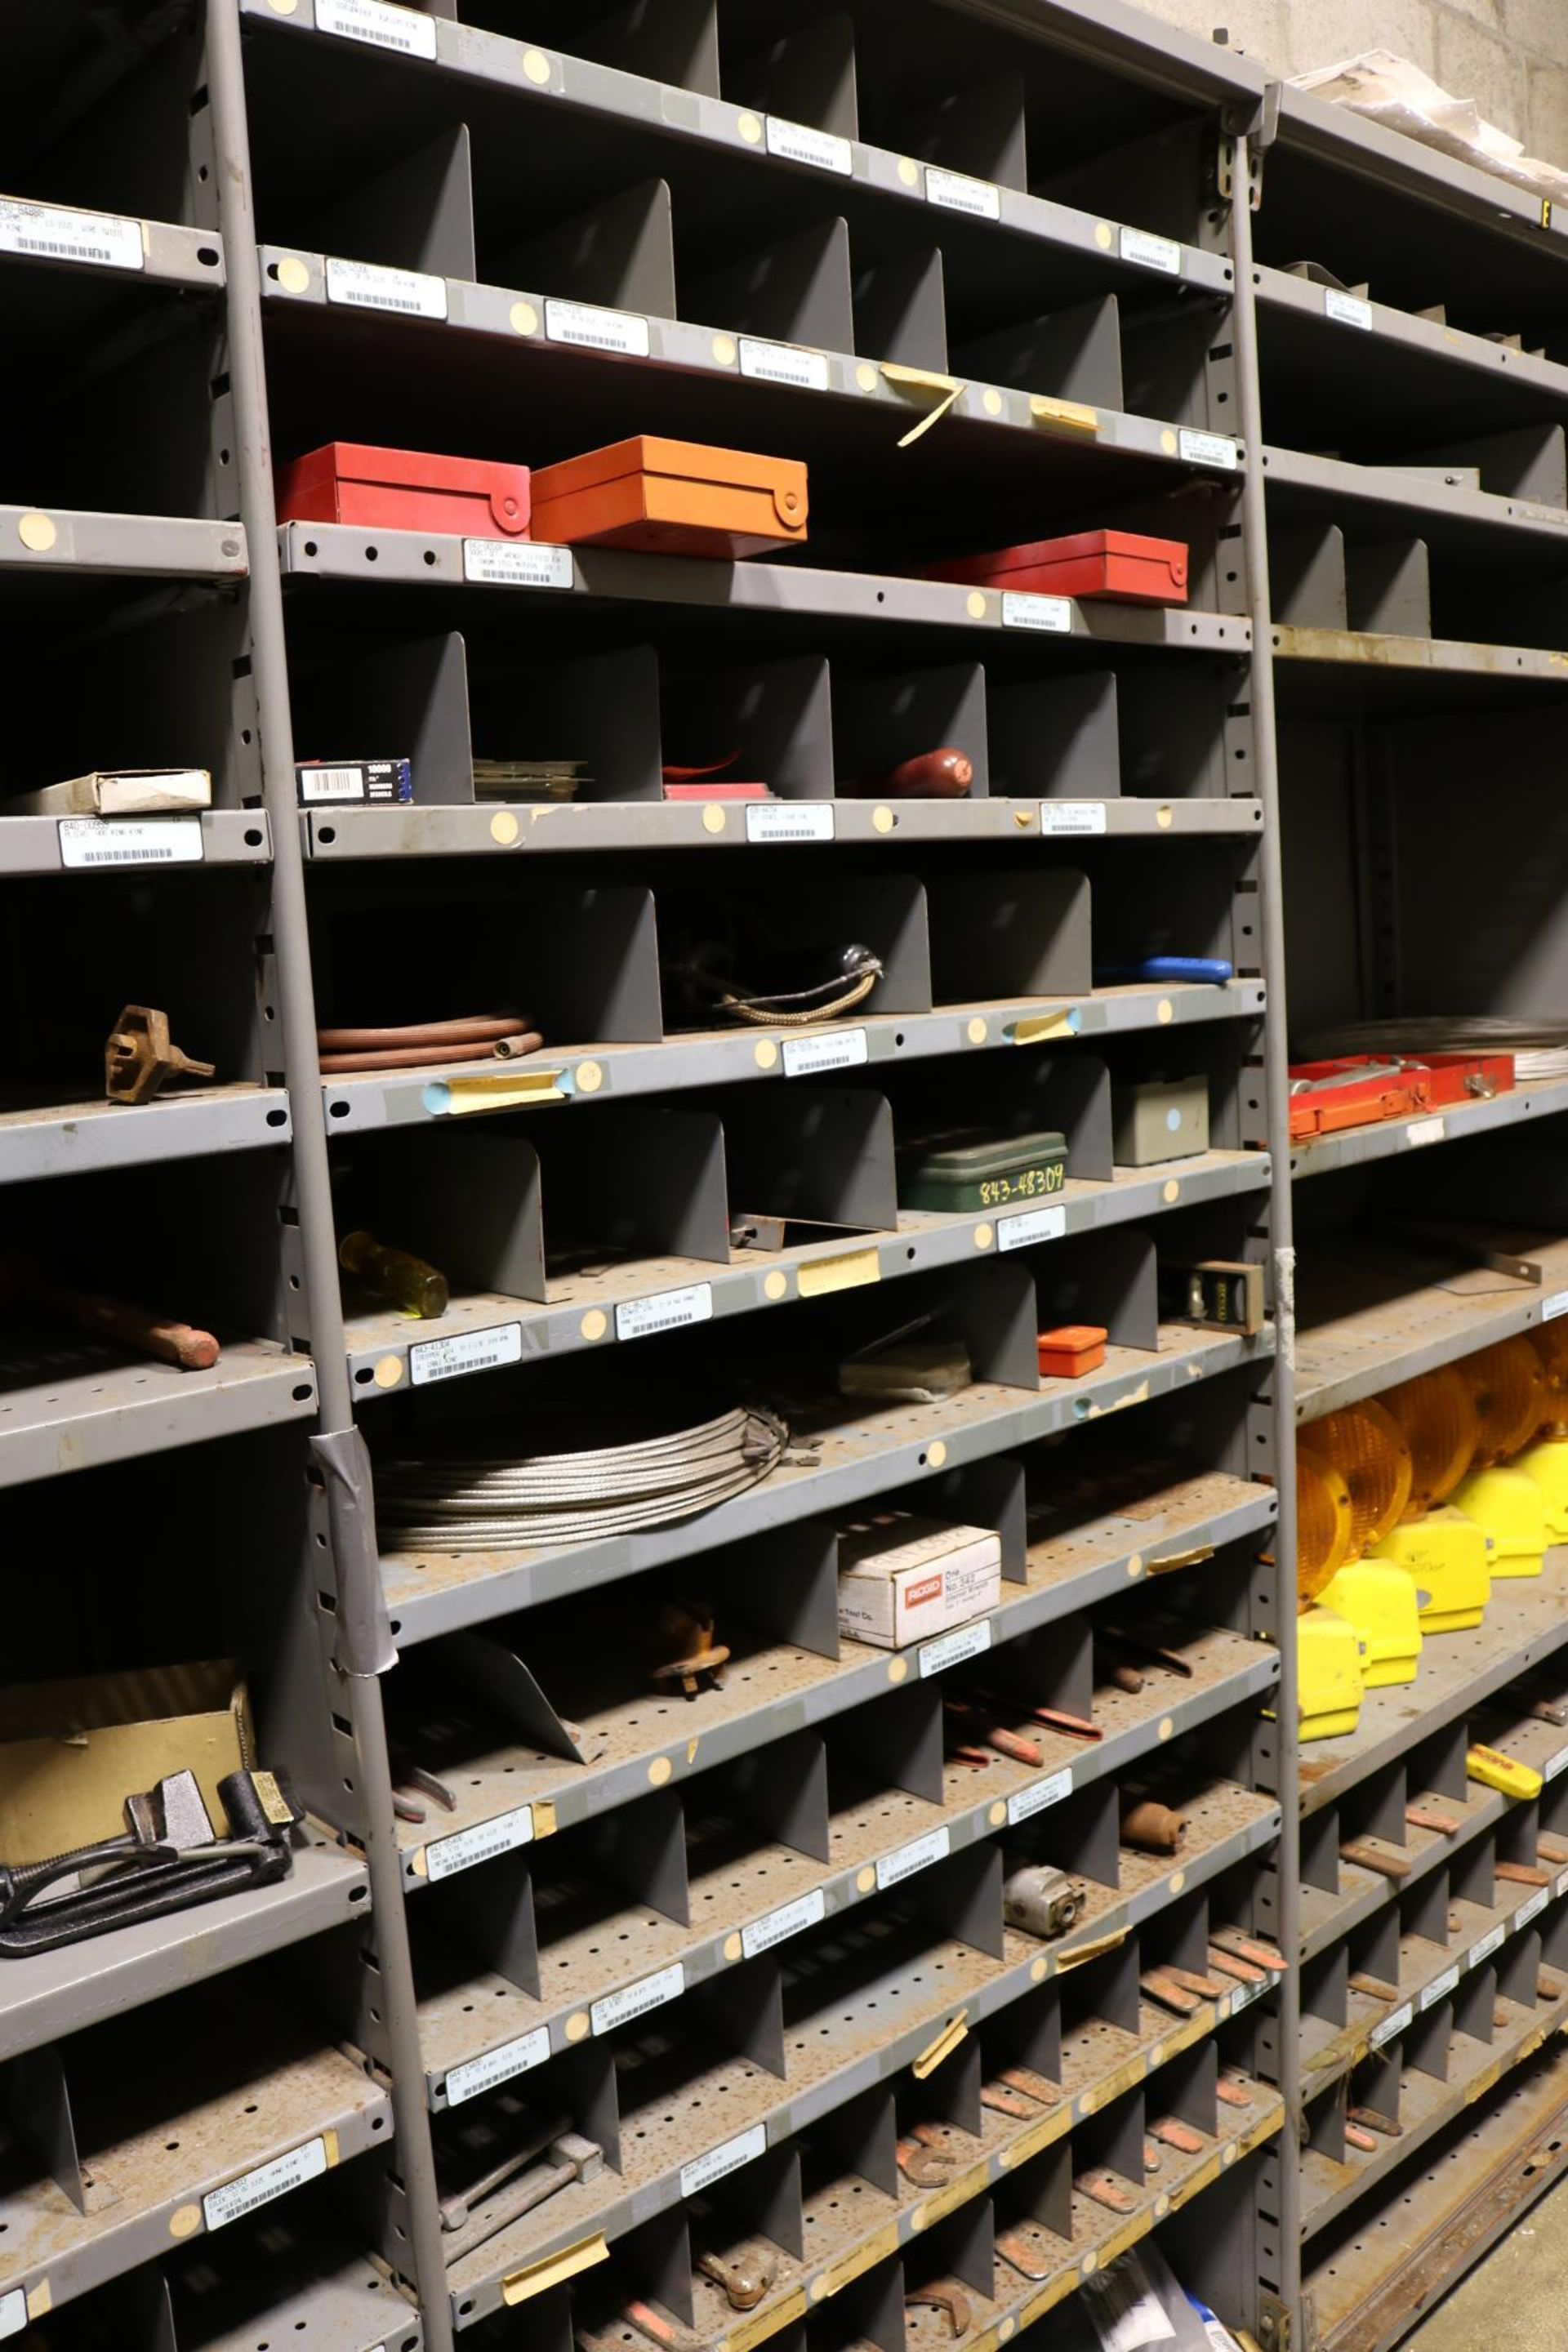 Lot 11 - LOT - CONTENTS OF (4) 3' SECTIONS OF SHELVING TO INCLUDE: MISC HAND TOOLS, RIVETS, INTERNAL PIPE